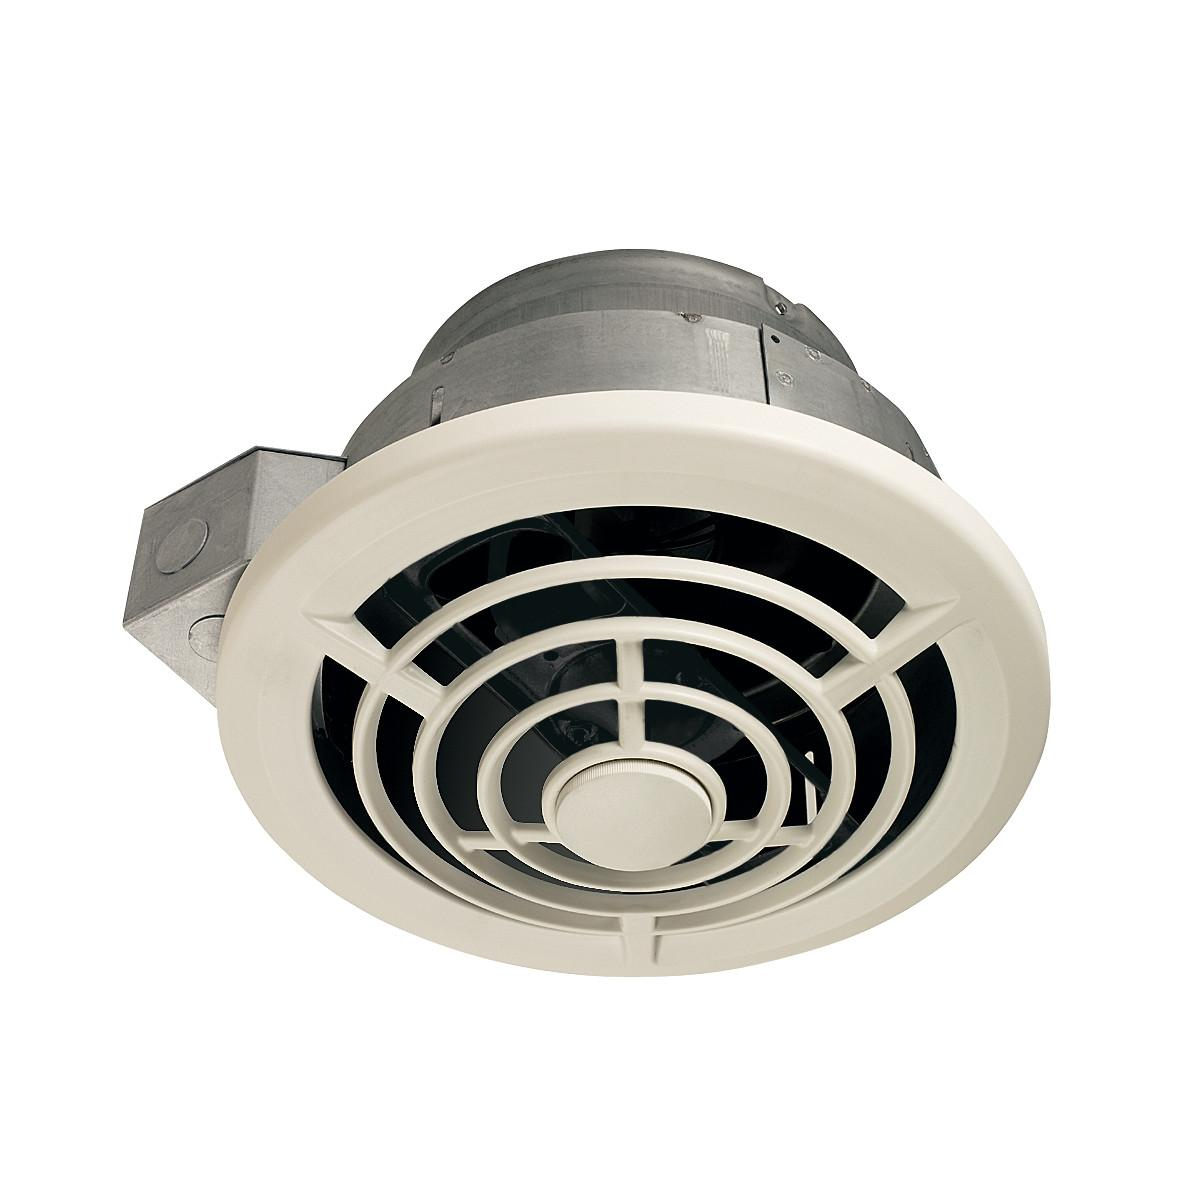 Kitchen Ceiling Exhaust Fan With Light: NuTone 8210 8-Inch Vertical Discharge And 7-Inch Round